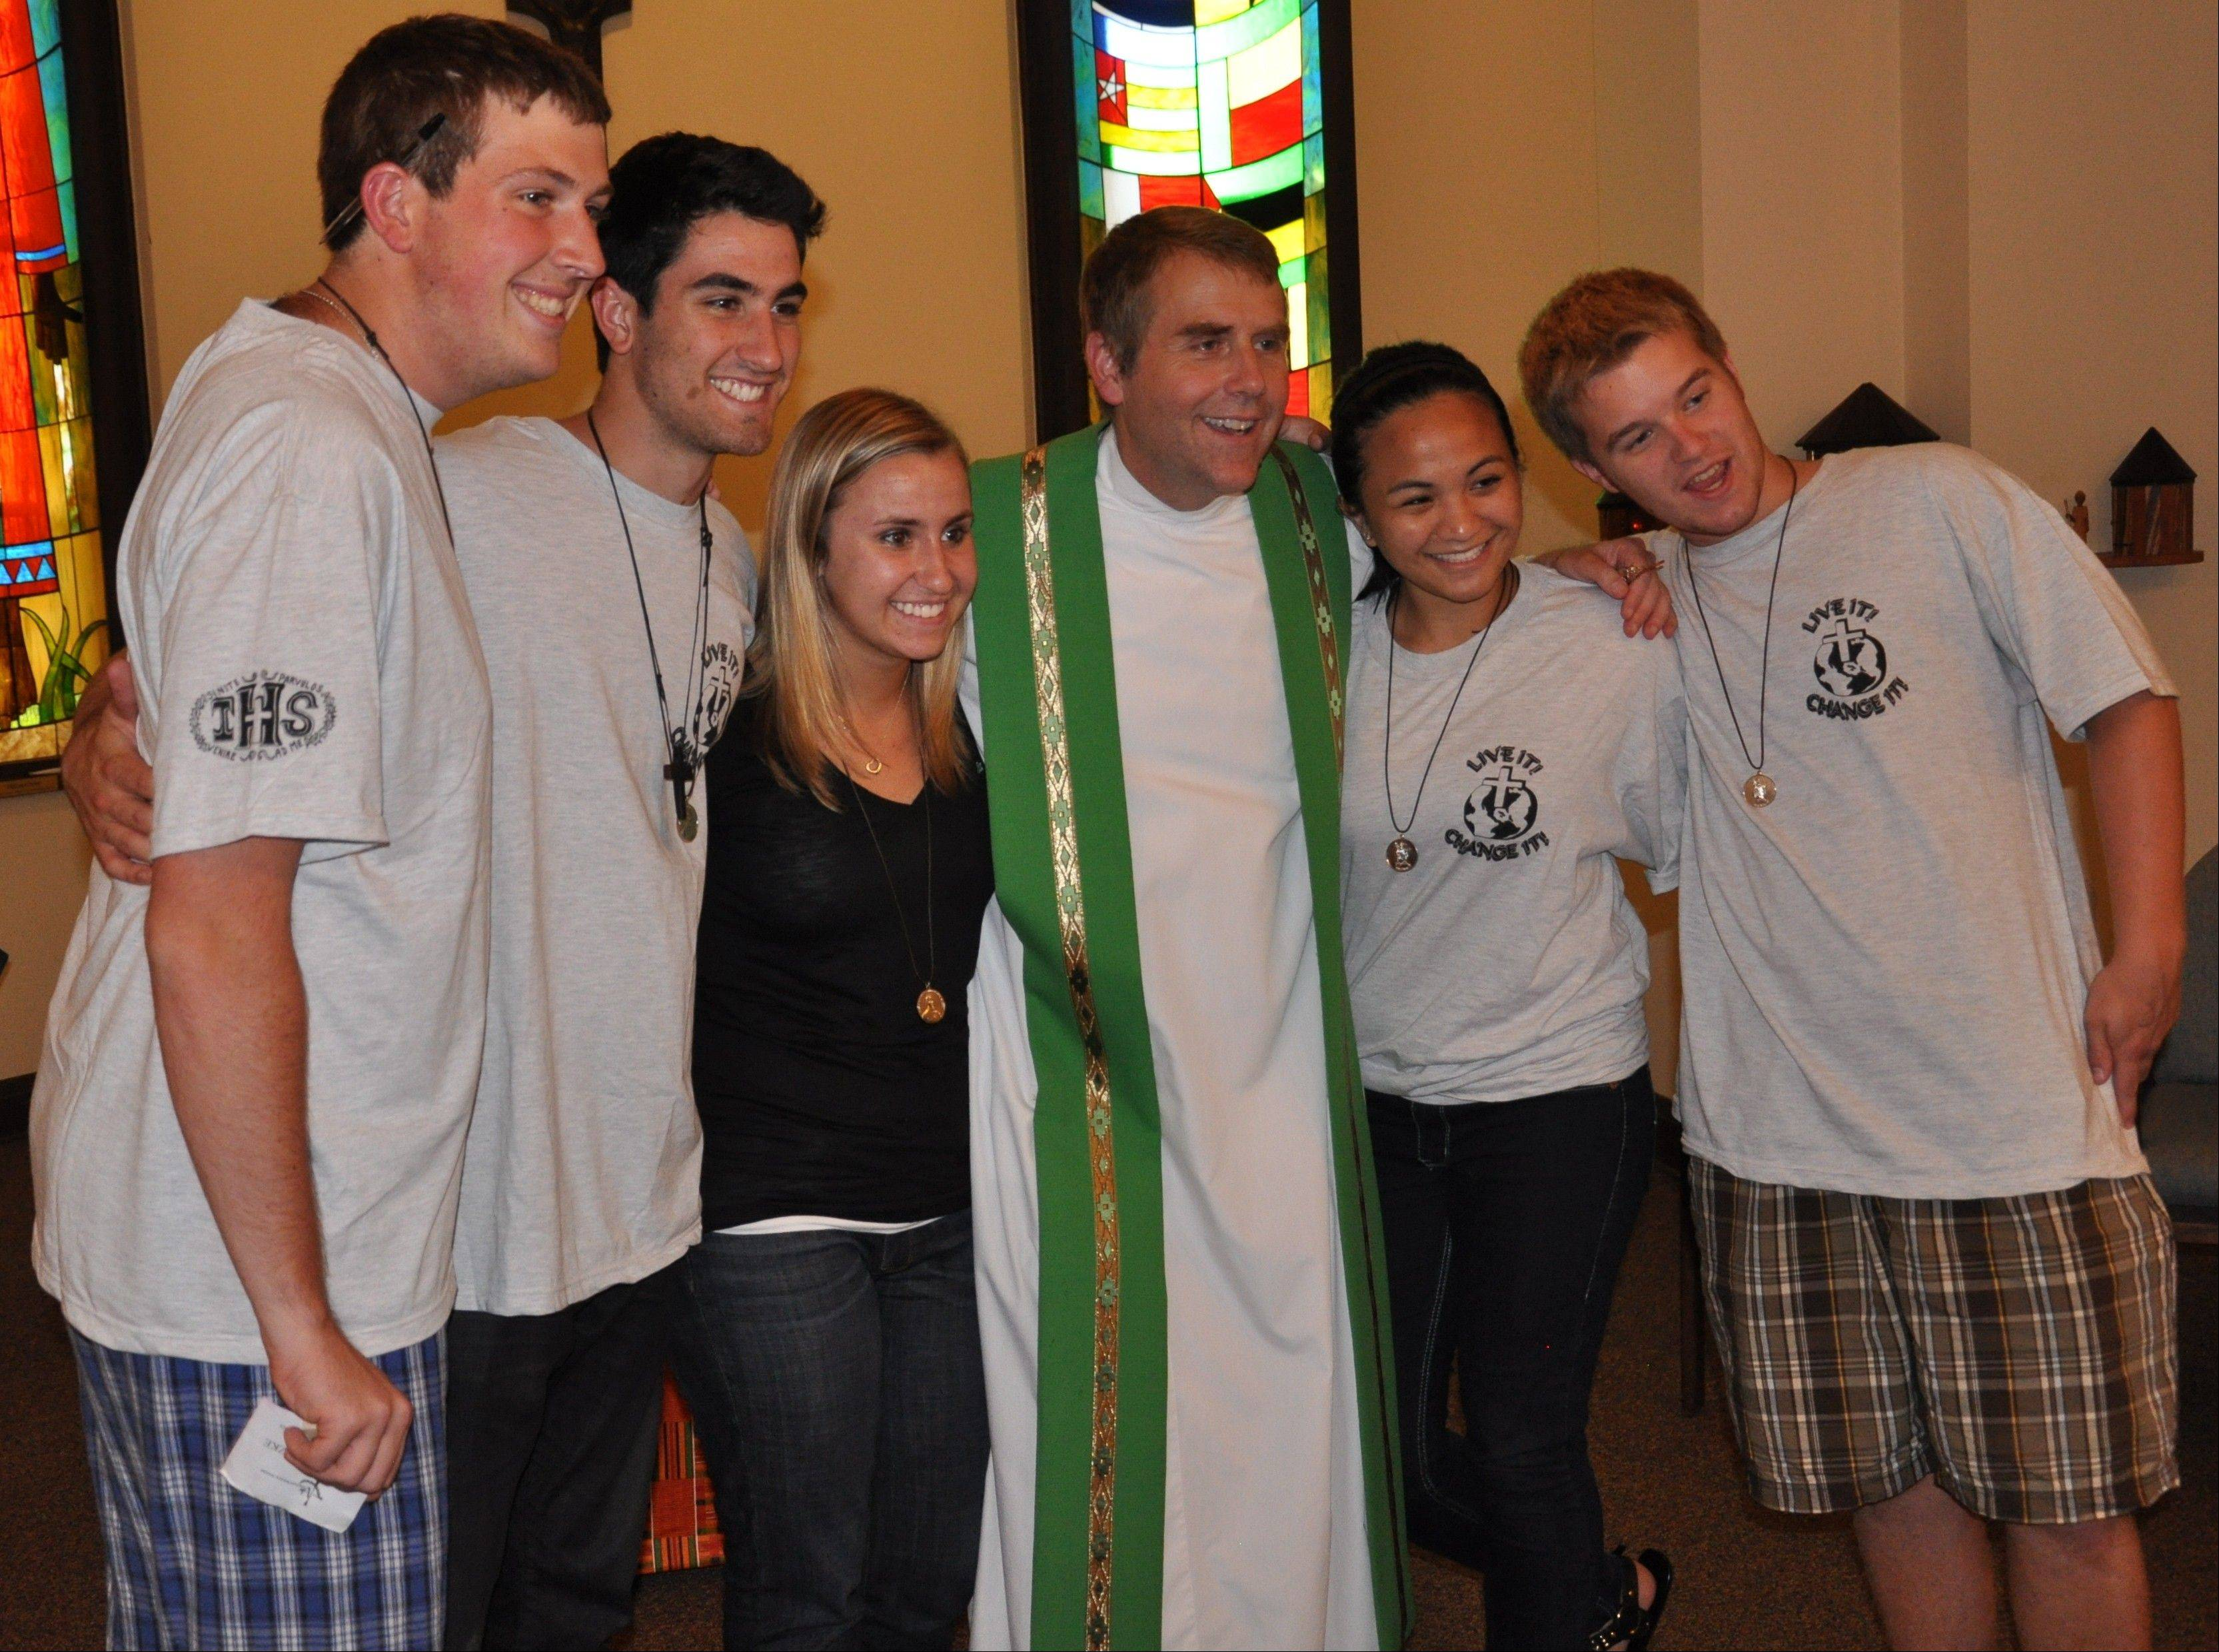 The Rev. Corey Brost, CSV, with student leaders from the congress after the closing Mass. Included, from left, are Steven Patzke of Arlington Heights, Nick Manfredi of Las Vegas, Lauren Drolet of Inverness, Cassie Esteban of Las Vegas and Tim Ivers of Arlington Heights.